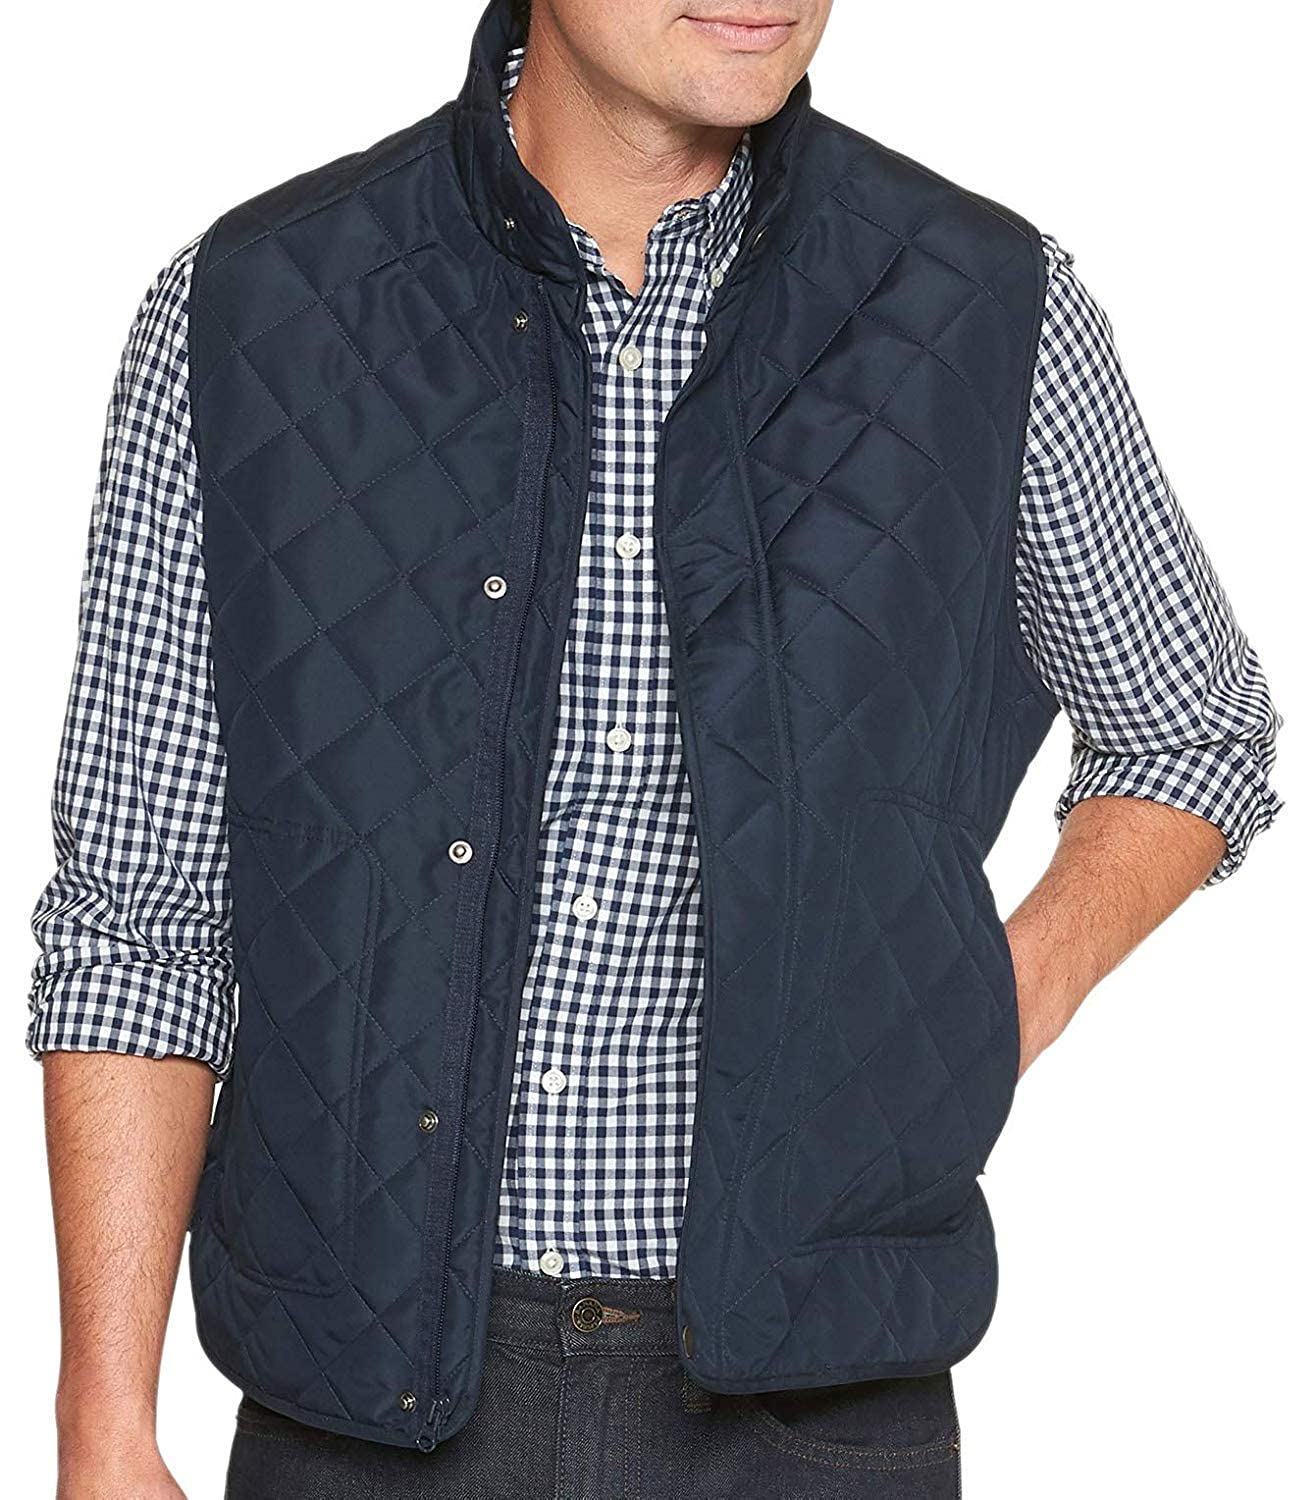 55f8335e5 Banana Republic Mens Water-Resistant Diamond Quilted Layering Vest ...